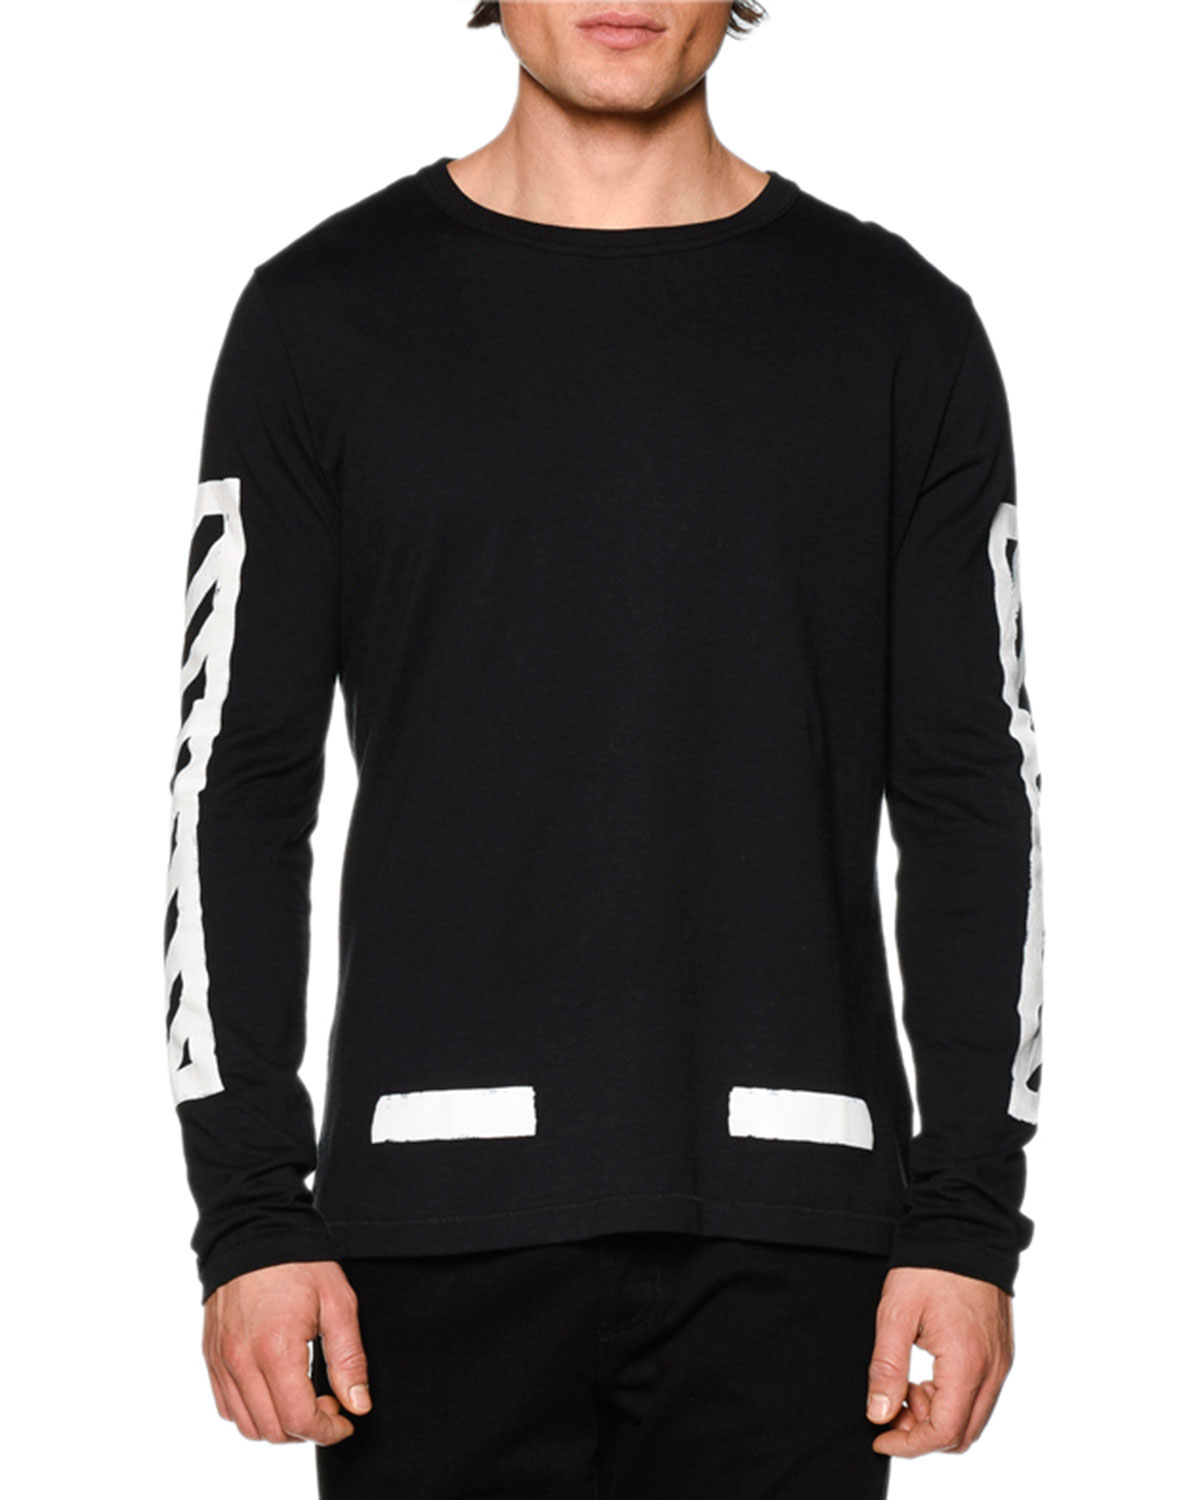 Brushed Lines Long-Sleeve Graphic T-Shirt, Black/White